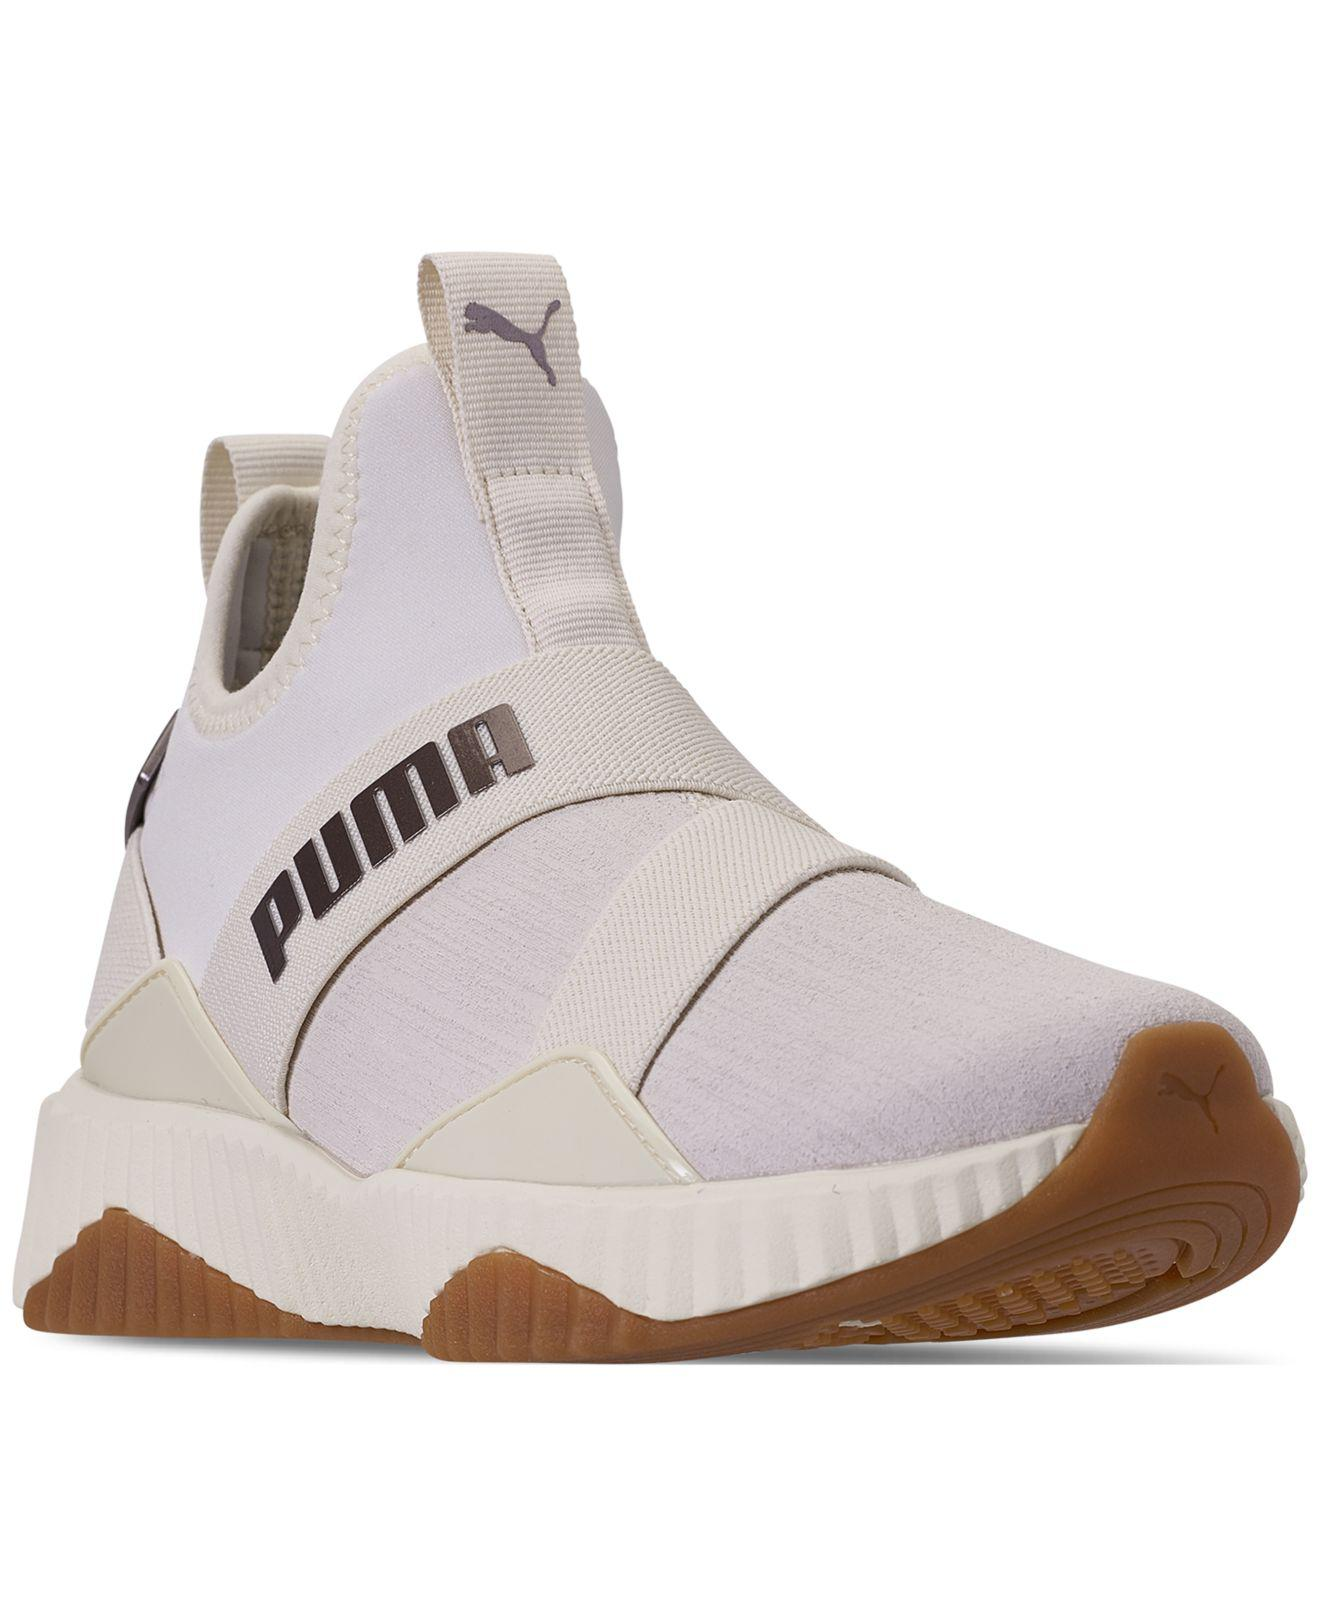 Lyst - PUMA Defy Mid Luxe Casual Sneakers From Finish Line in White 60f1eb9a9